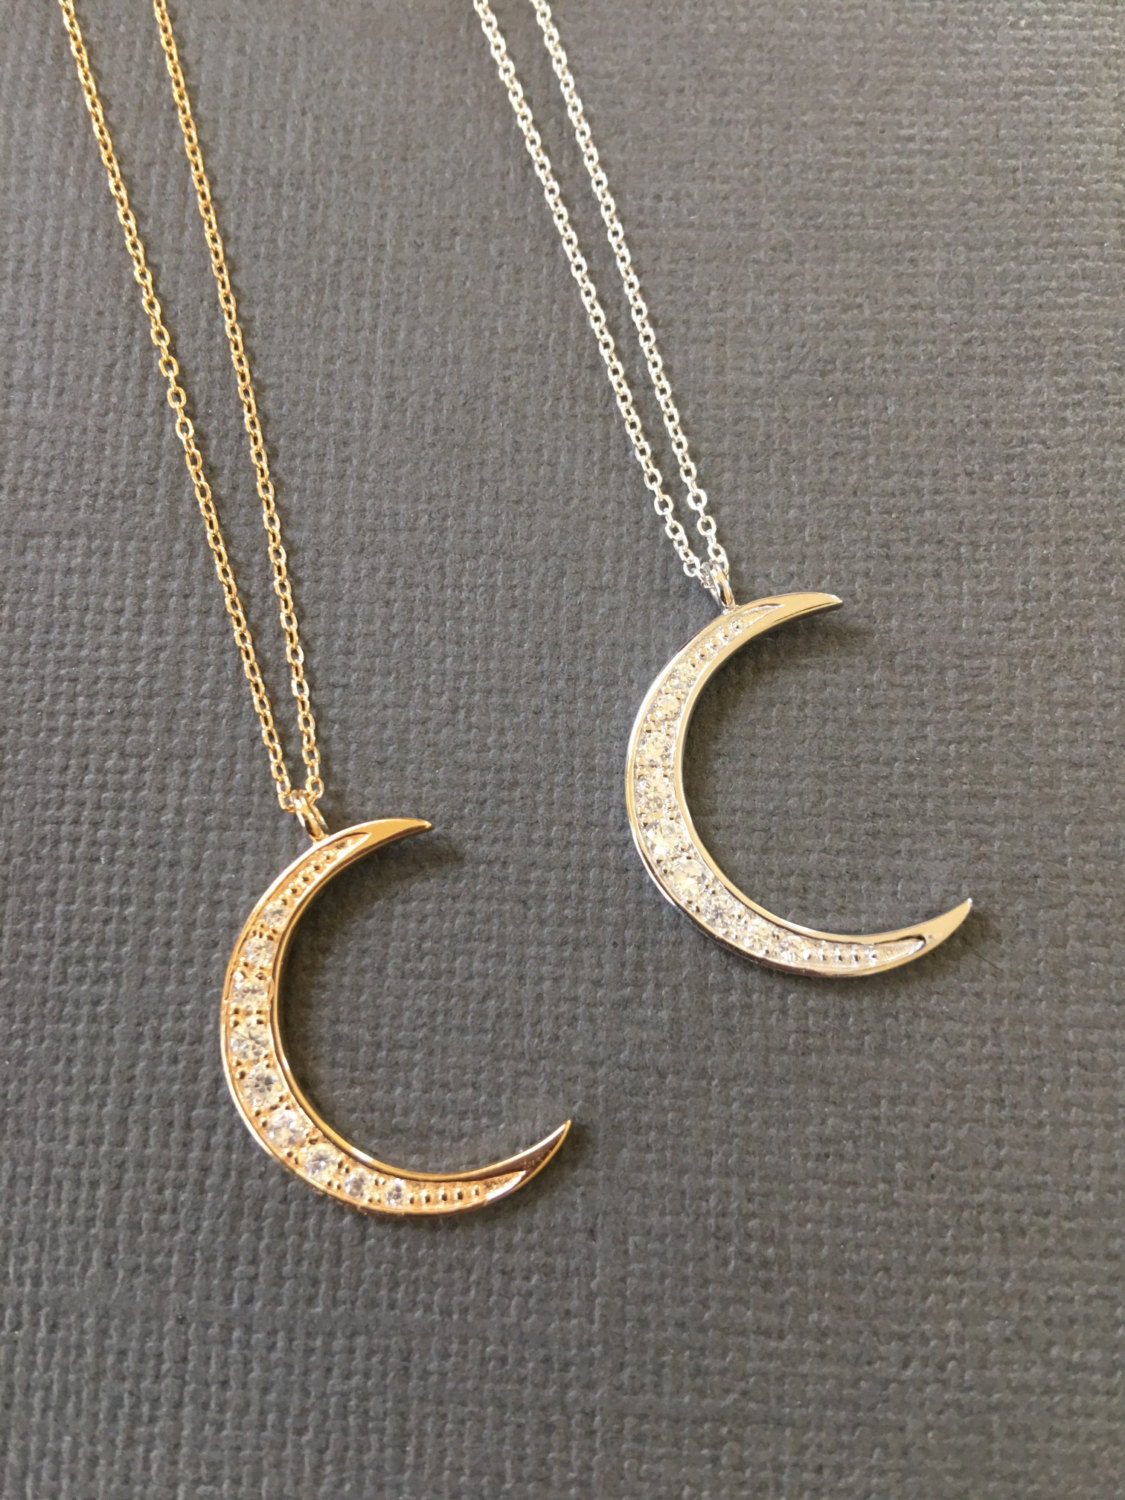 Crescent Moon Necklace Gold Moon Necklace Jewelry Dainty